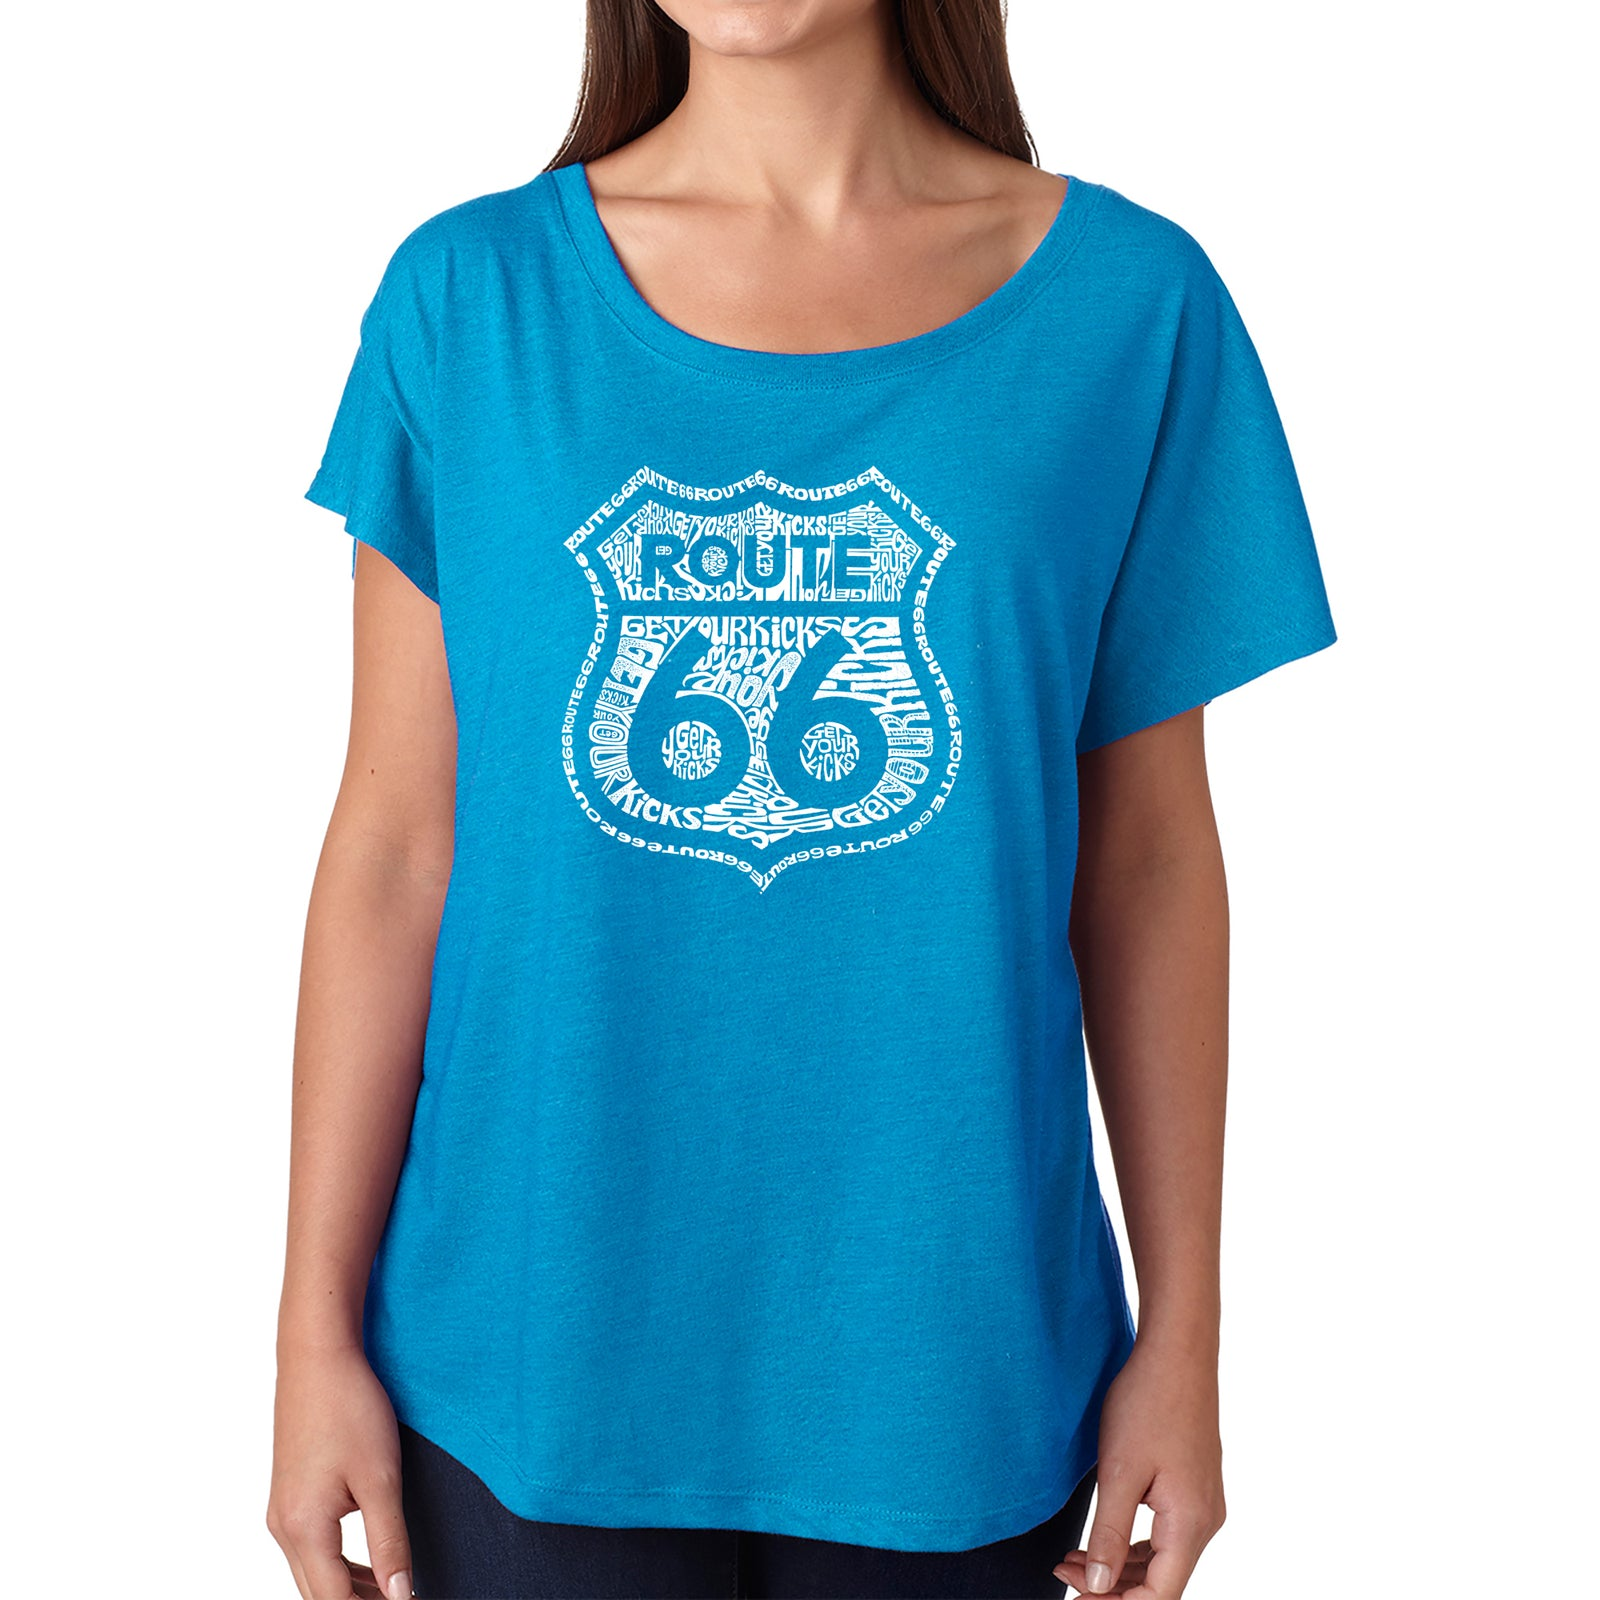 Women's Loose Fit Dolman Cut Word Art Shirt - Get Your Kicks on Route 66